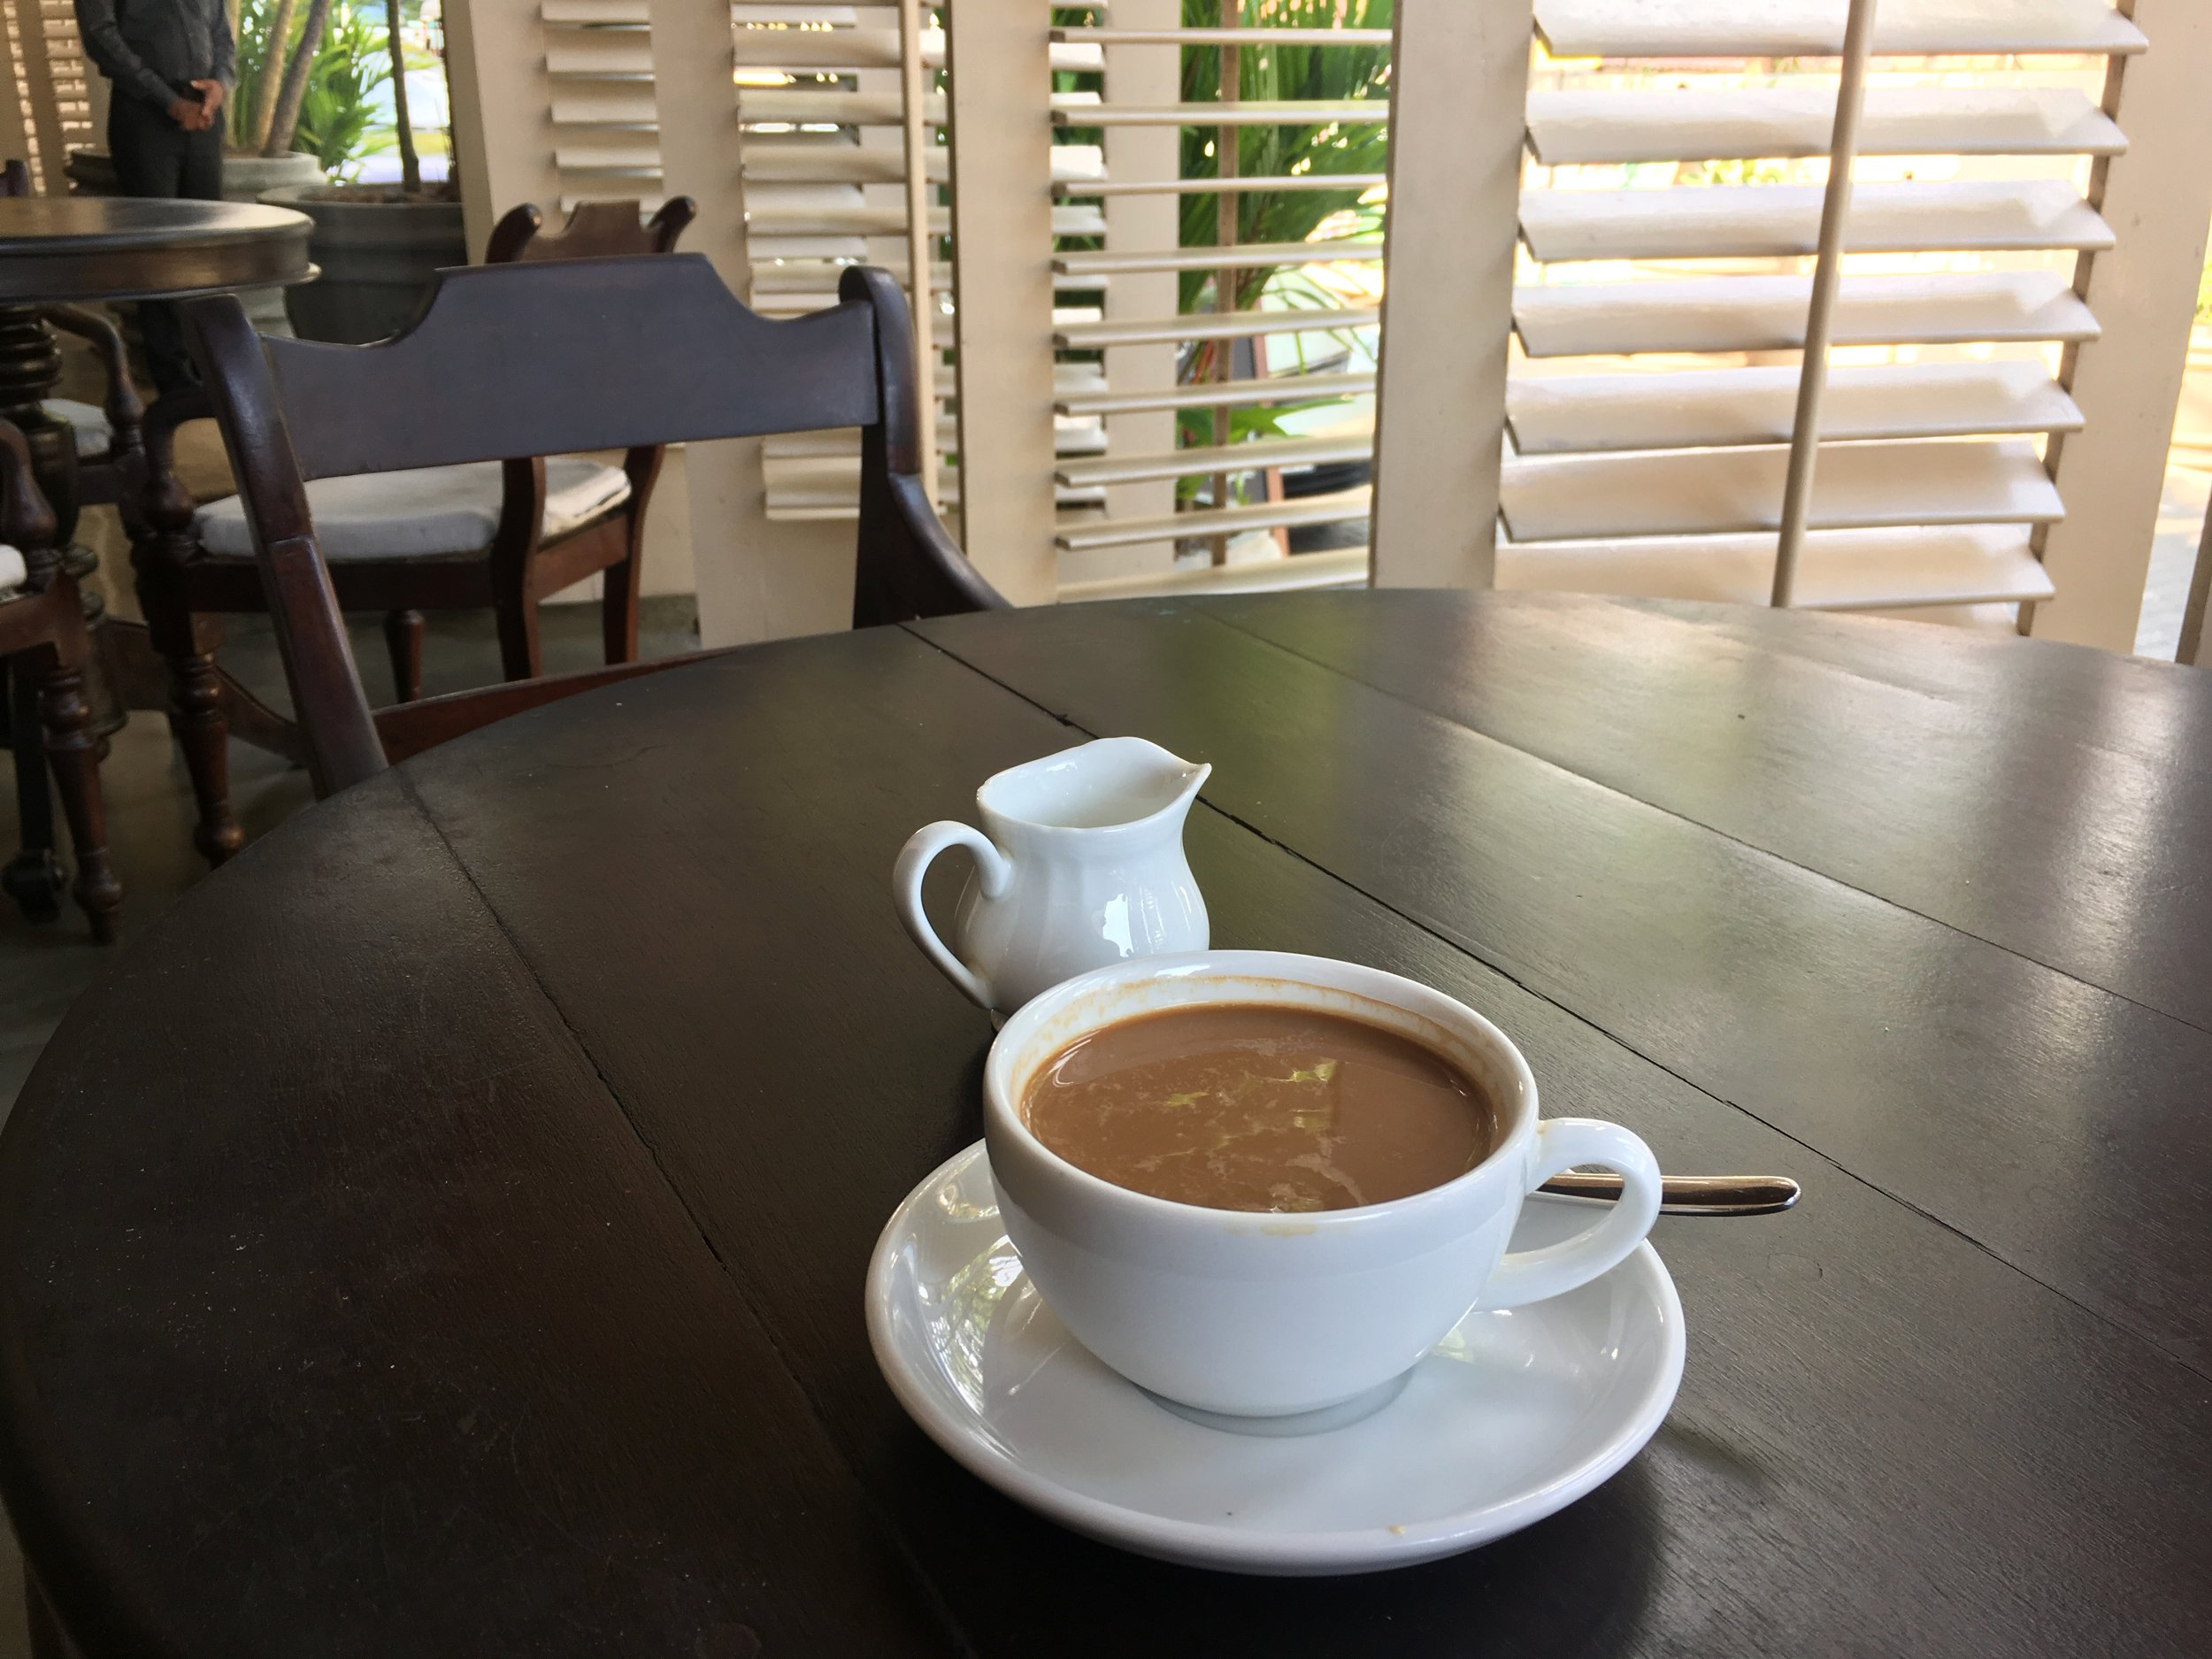 This was actually in the SLH hotel in the center of Galle: the Galle Fort Hotel. Great coffee! Next time we'll choose to stay here as well.